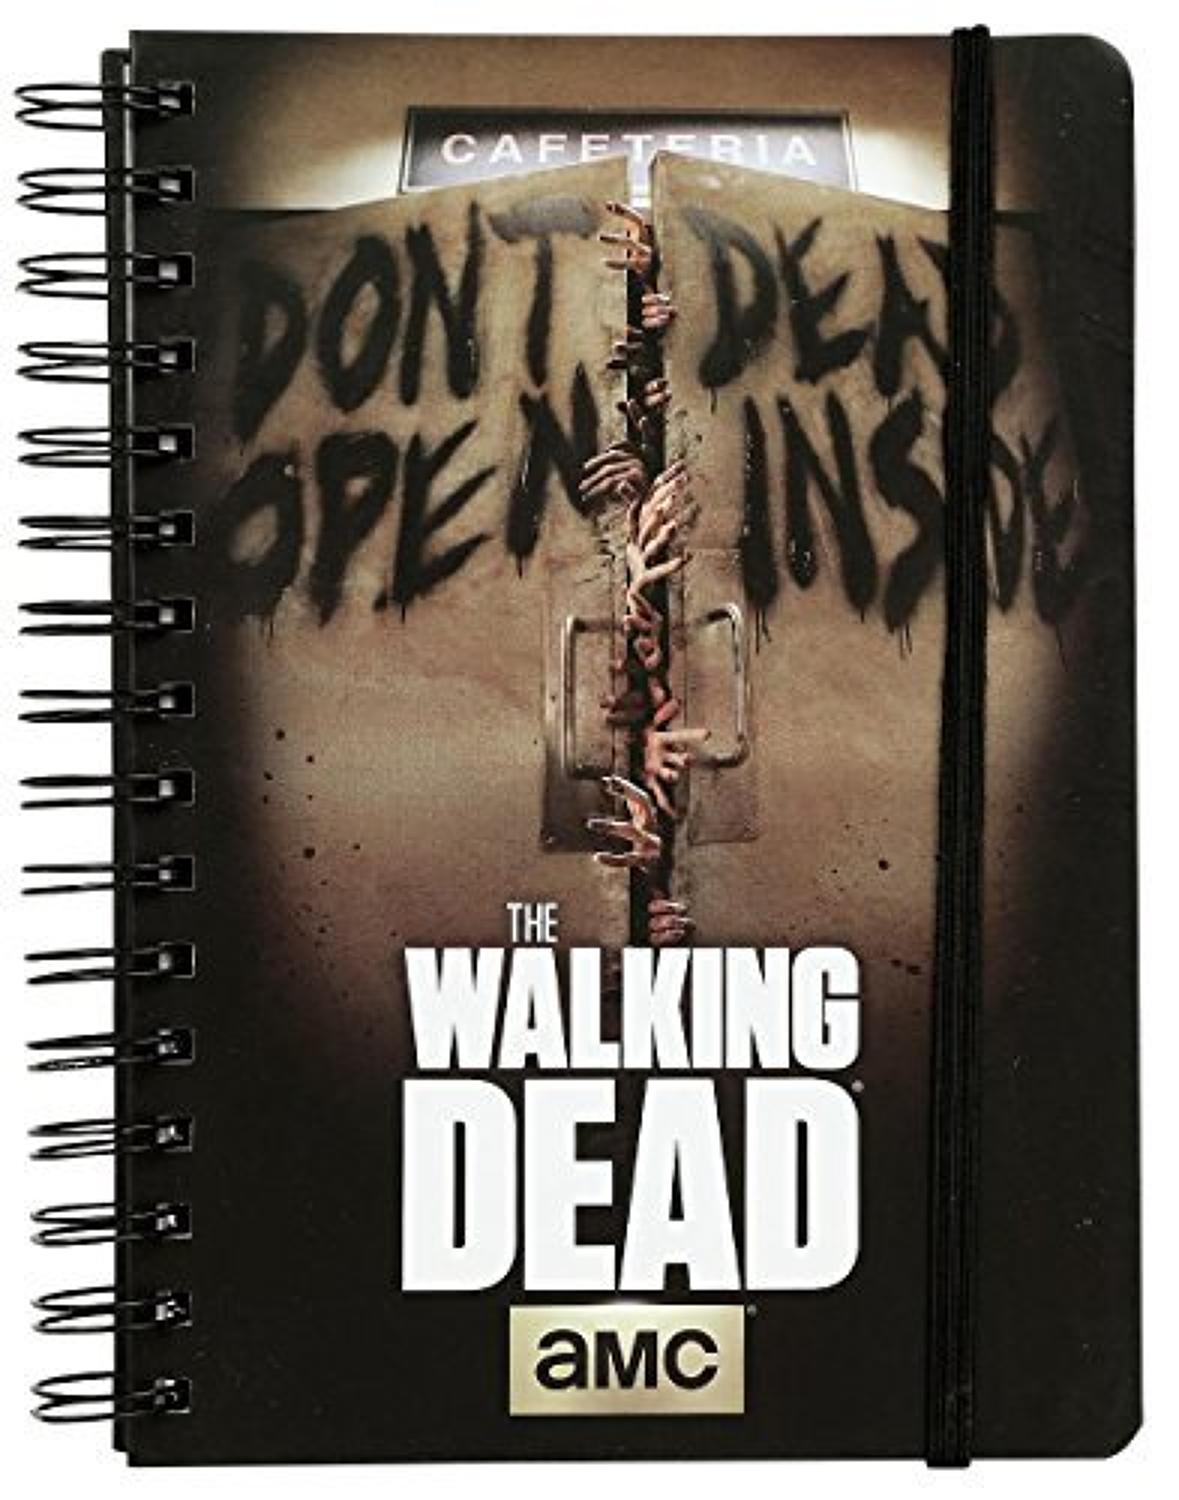 The Walking Dead - Official